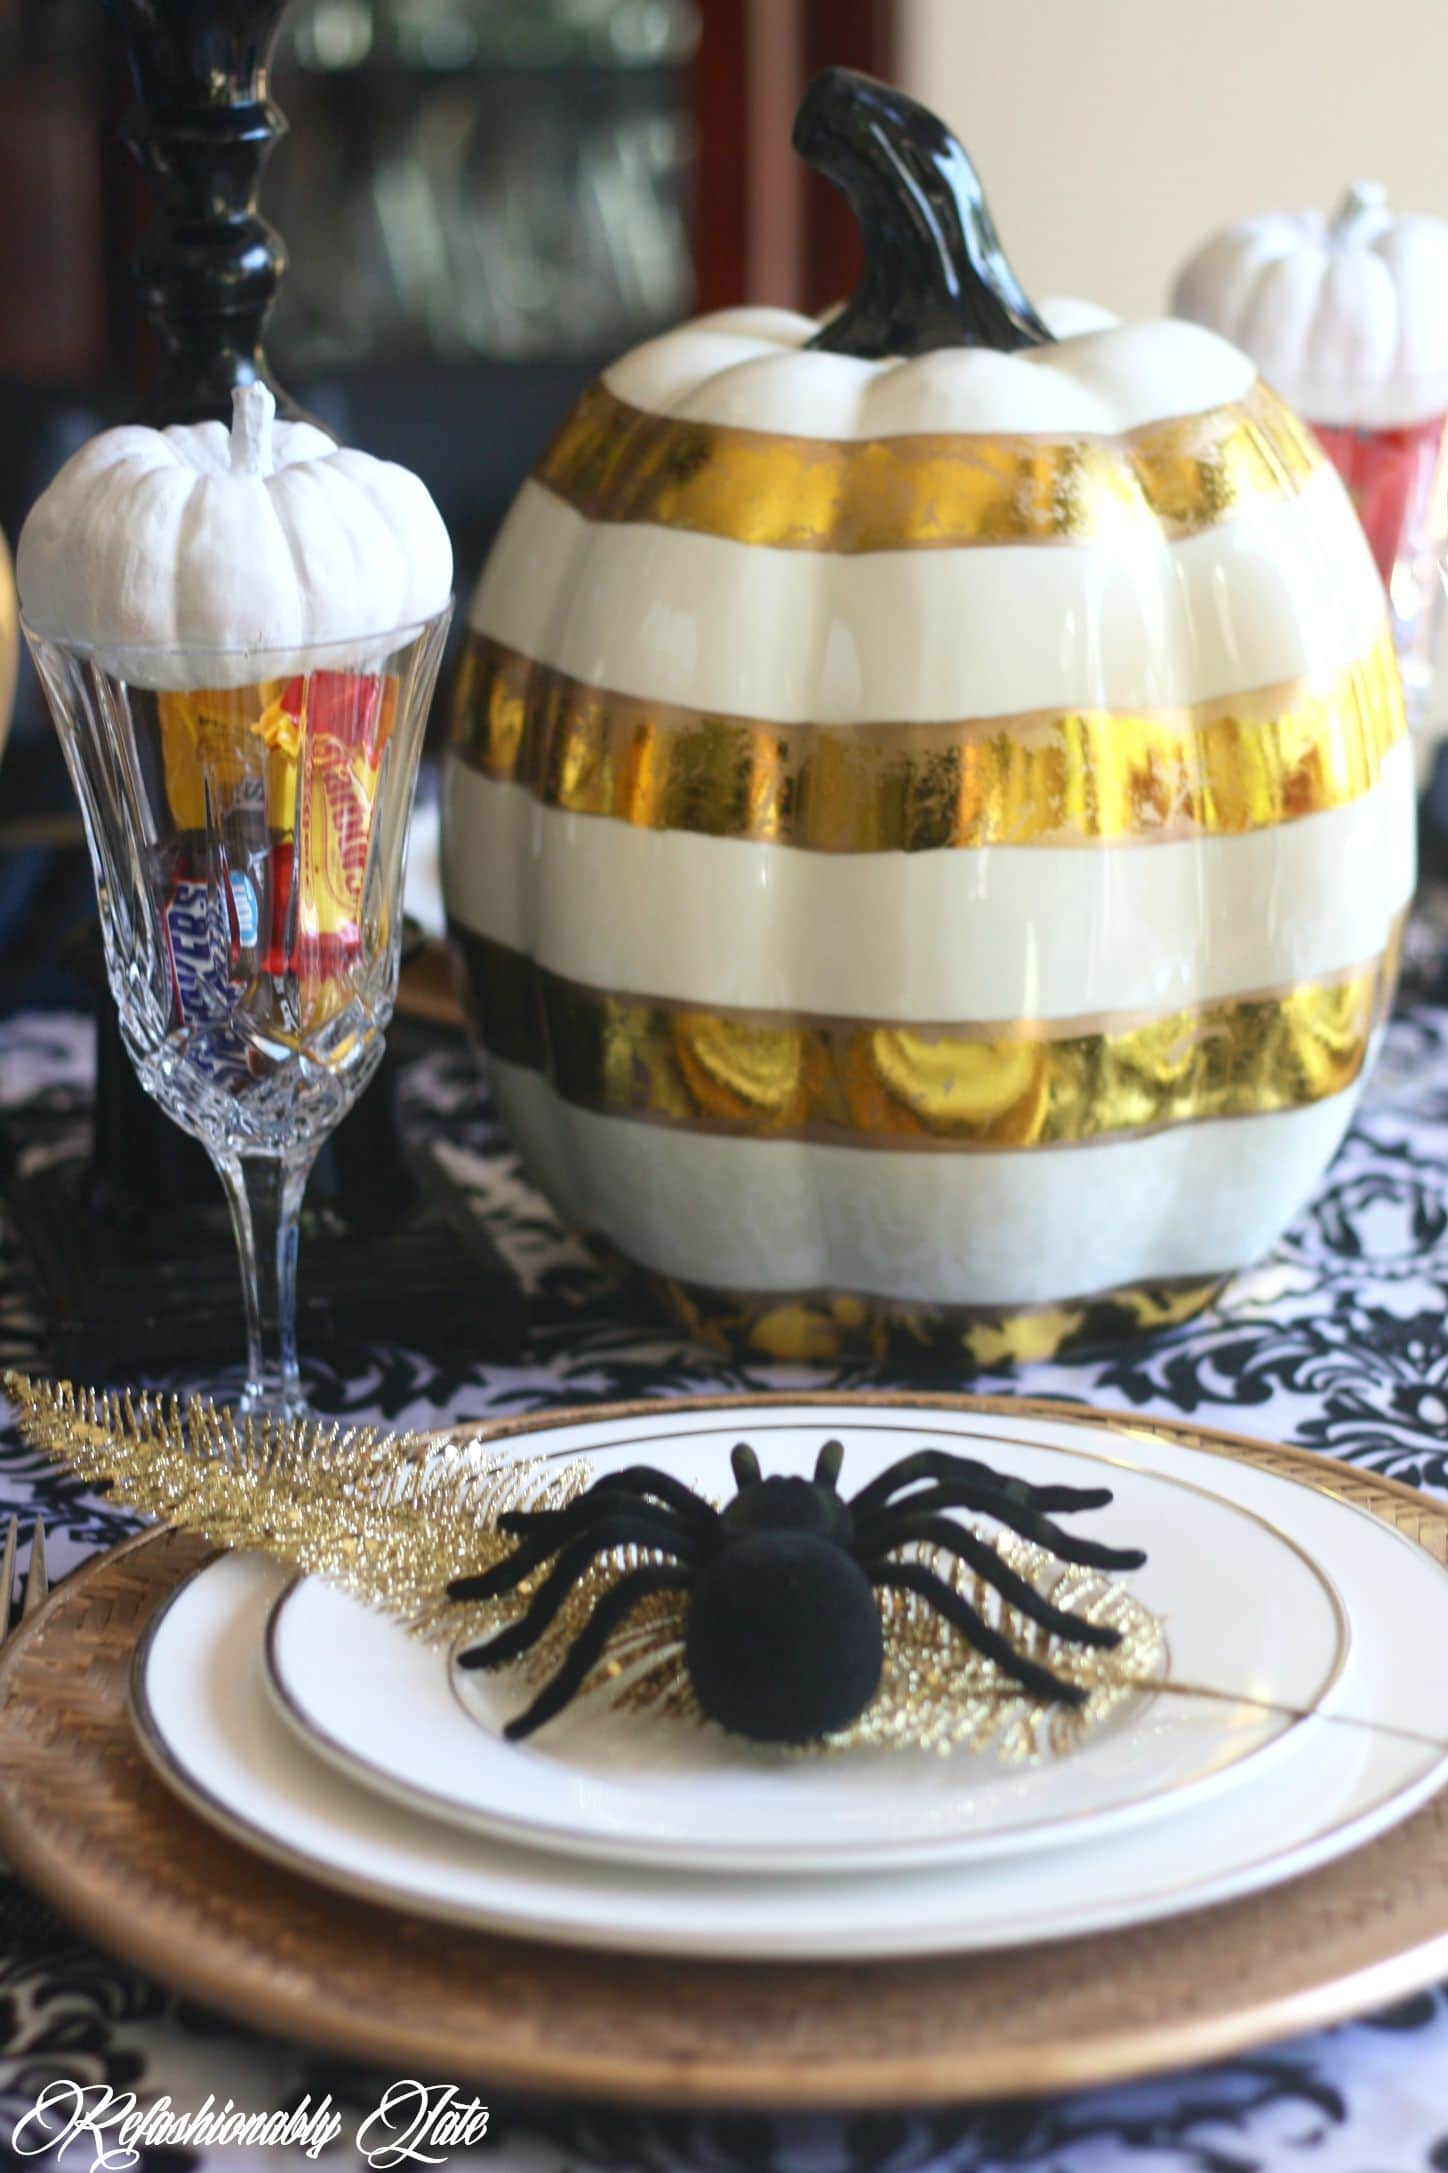 Gold and white striped pumpkin sitting on a damask tablecloth with a place setting in front of it